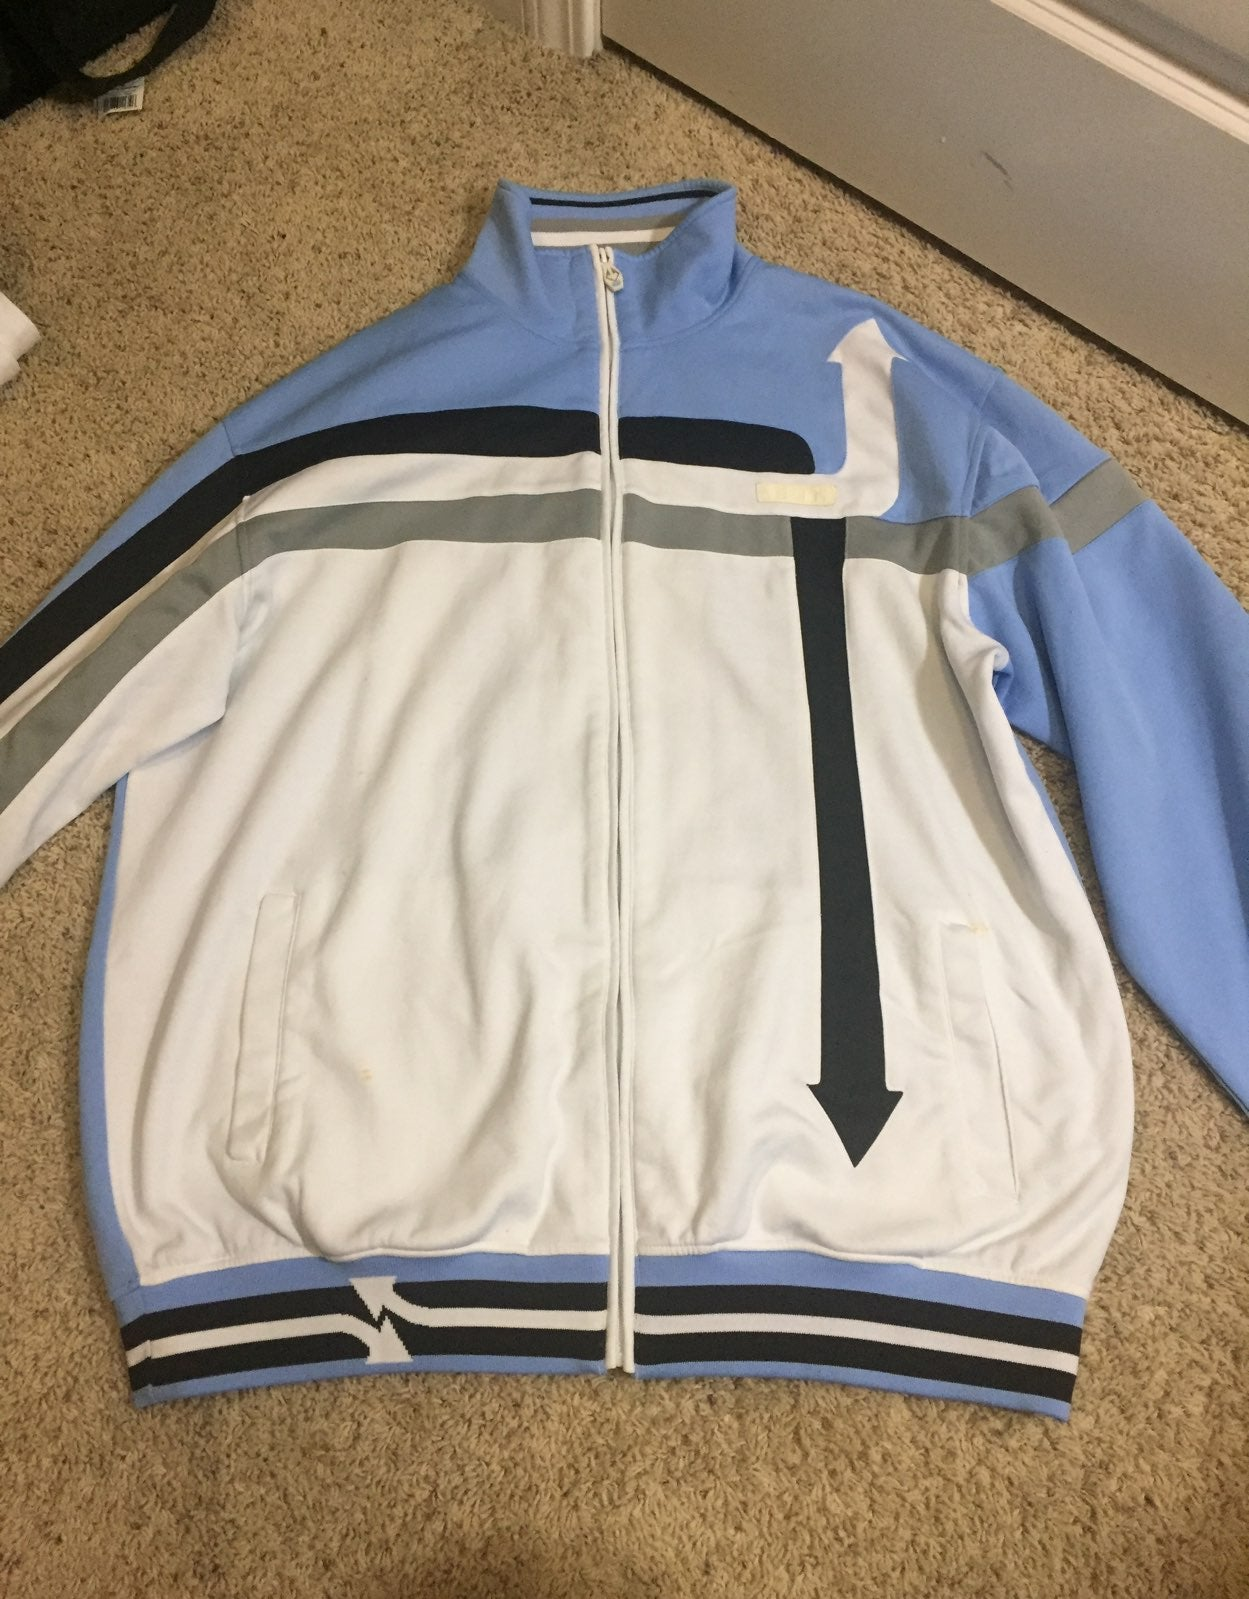 Ecko Unltd Track Jacket (Men XL)